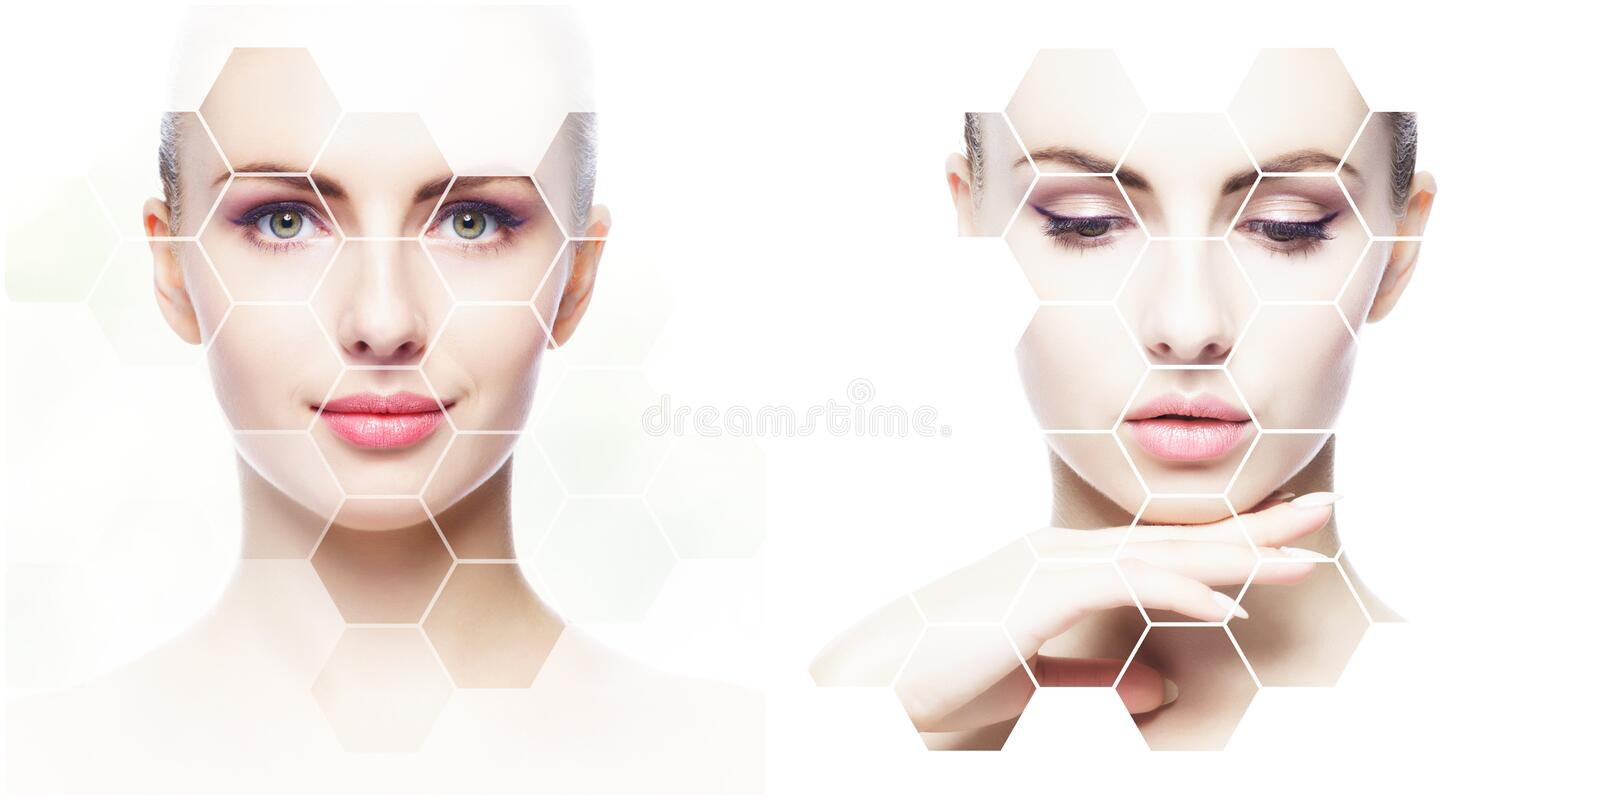 Collage of female portraits. Healthy faces of young women. Spa, face lifting, plastic surgery collage concept. Honeycomb mosaic stock photo